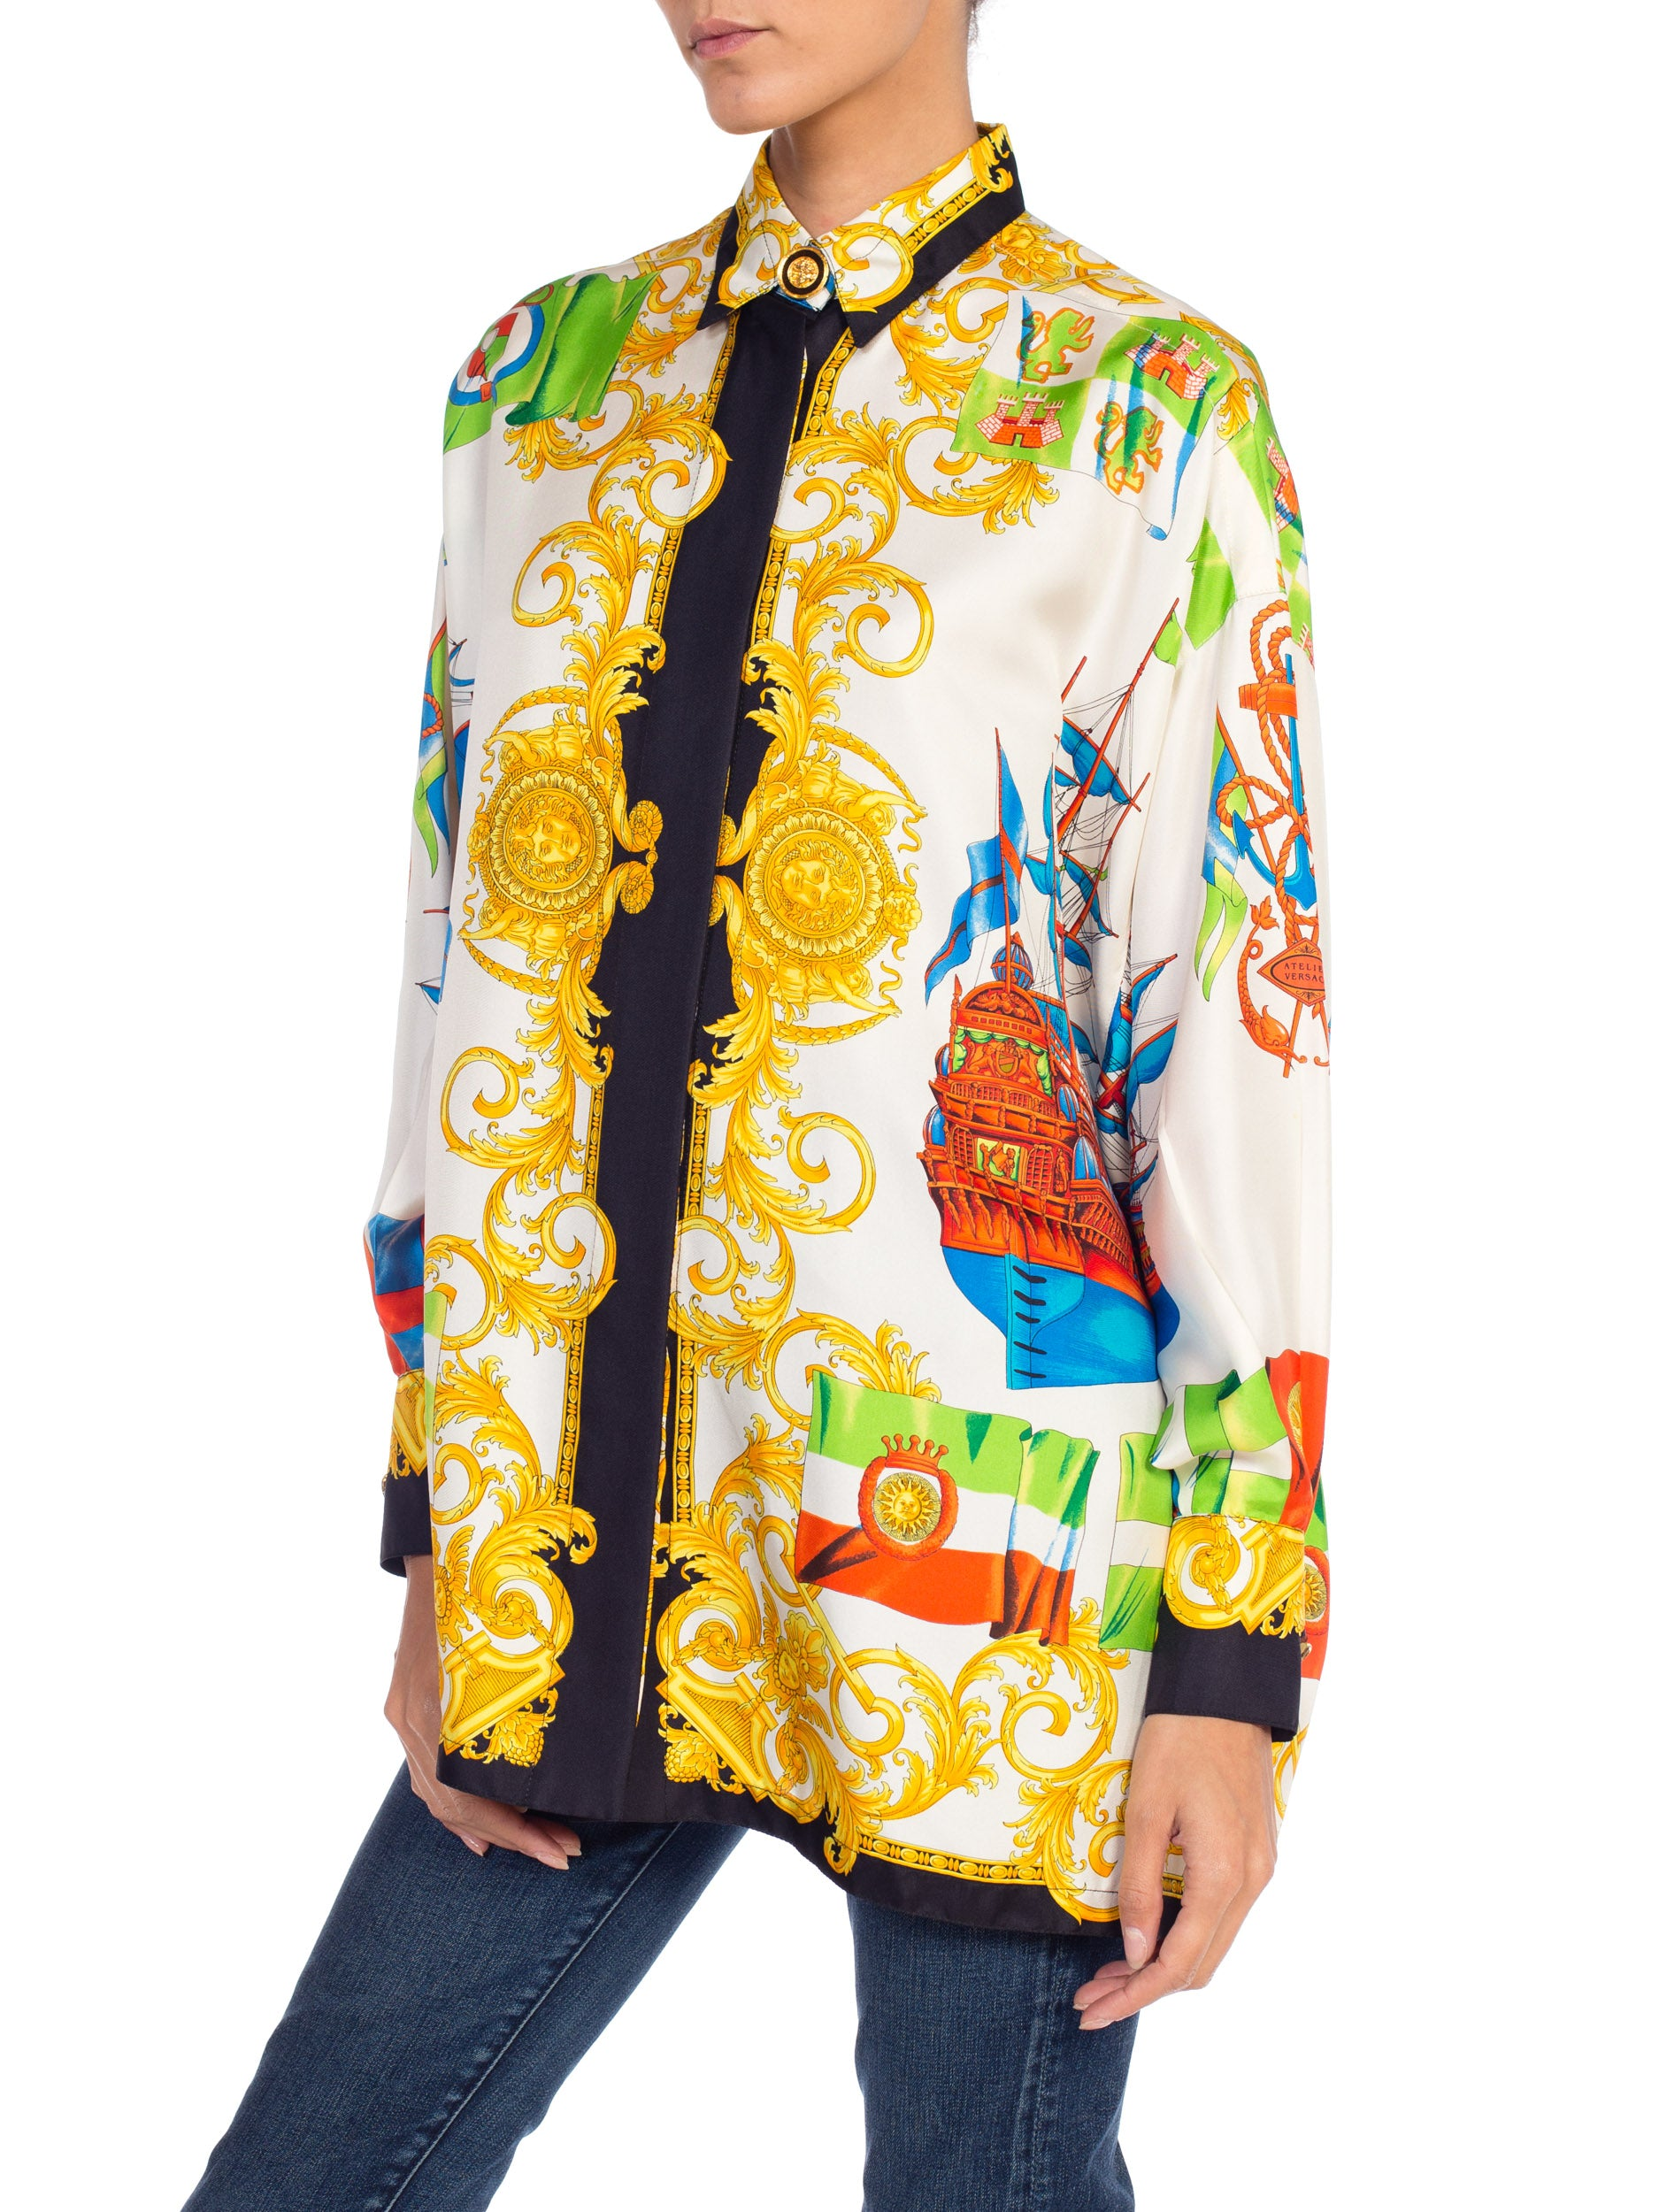 1990S GIANNI VERSACE Silk Blouse  Top